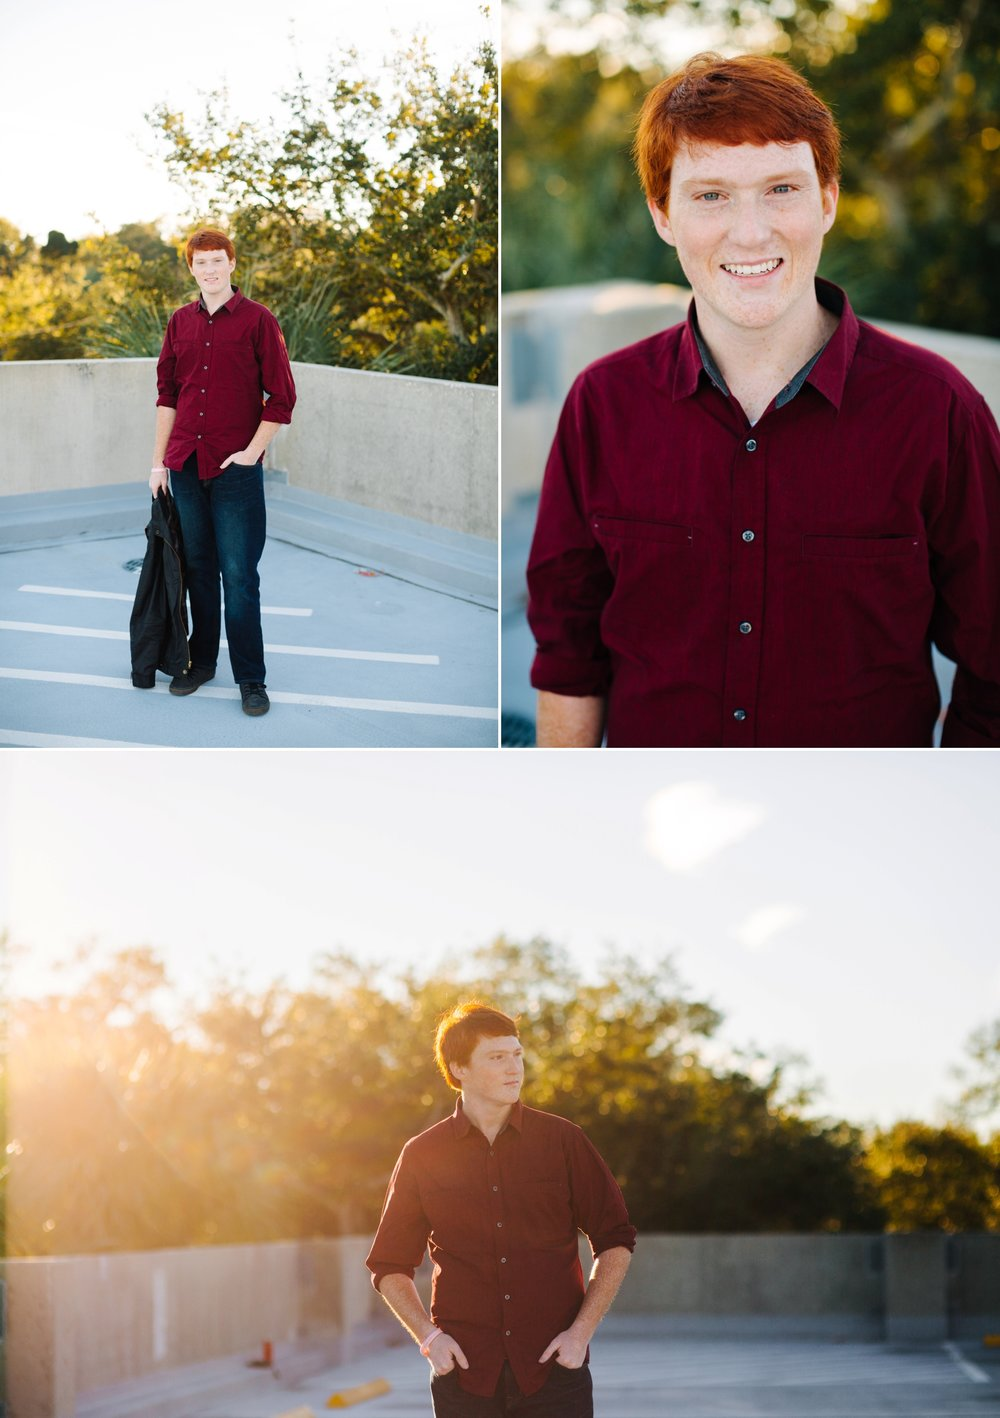 south tampa senior photo session jake and katie photography